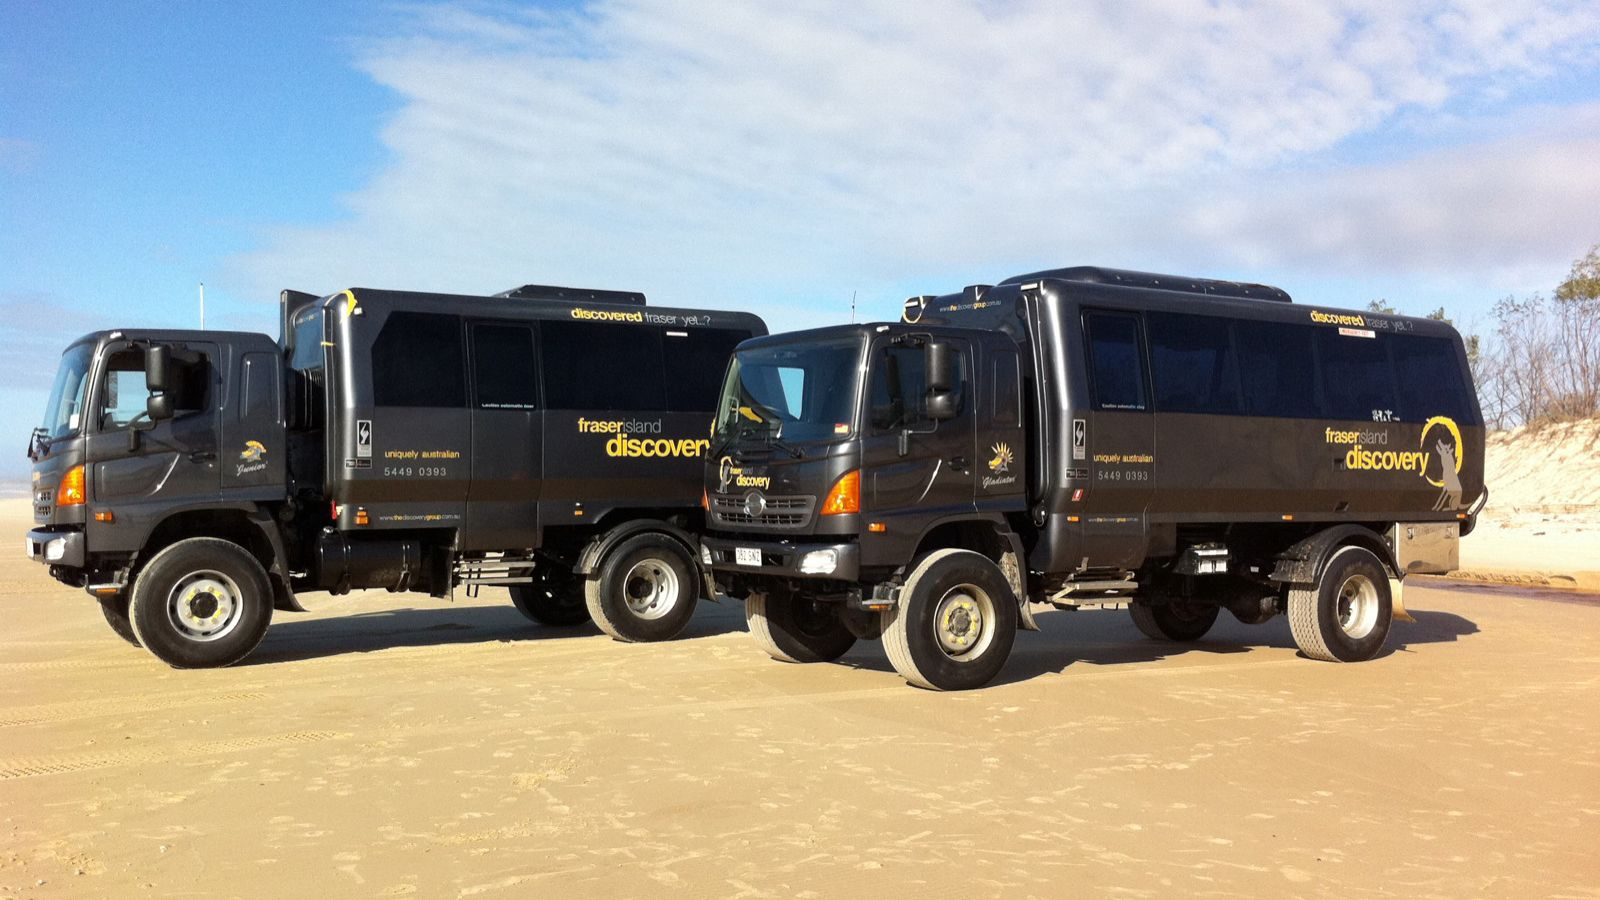 Two tour buses ready for the Fraser Island Day Tour on the Sunshine Coast